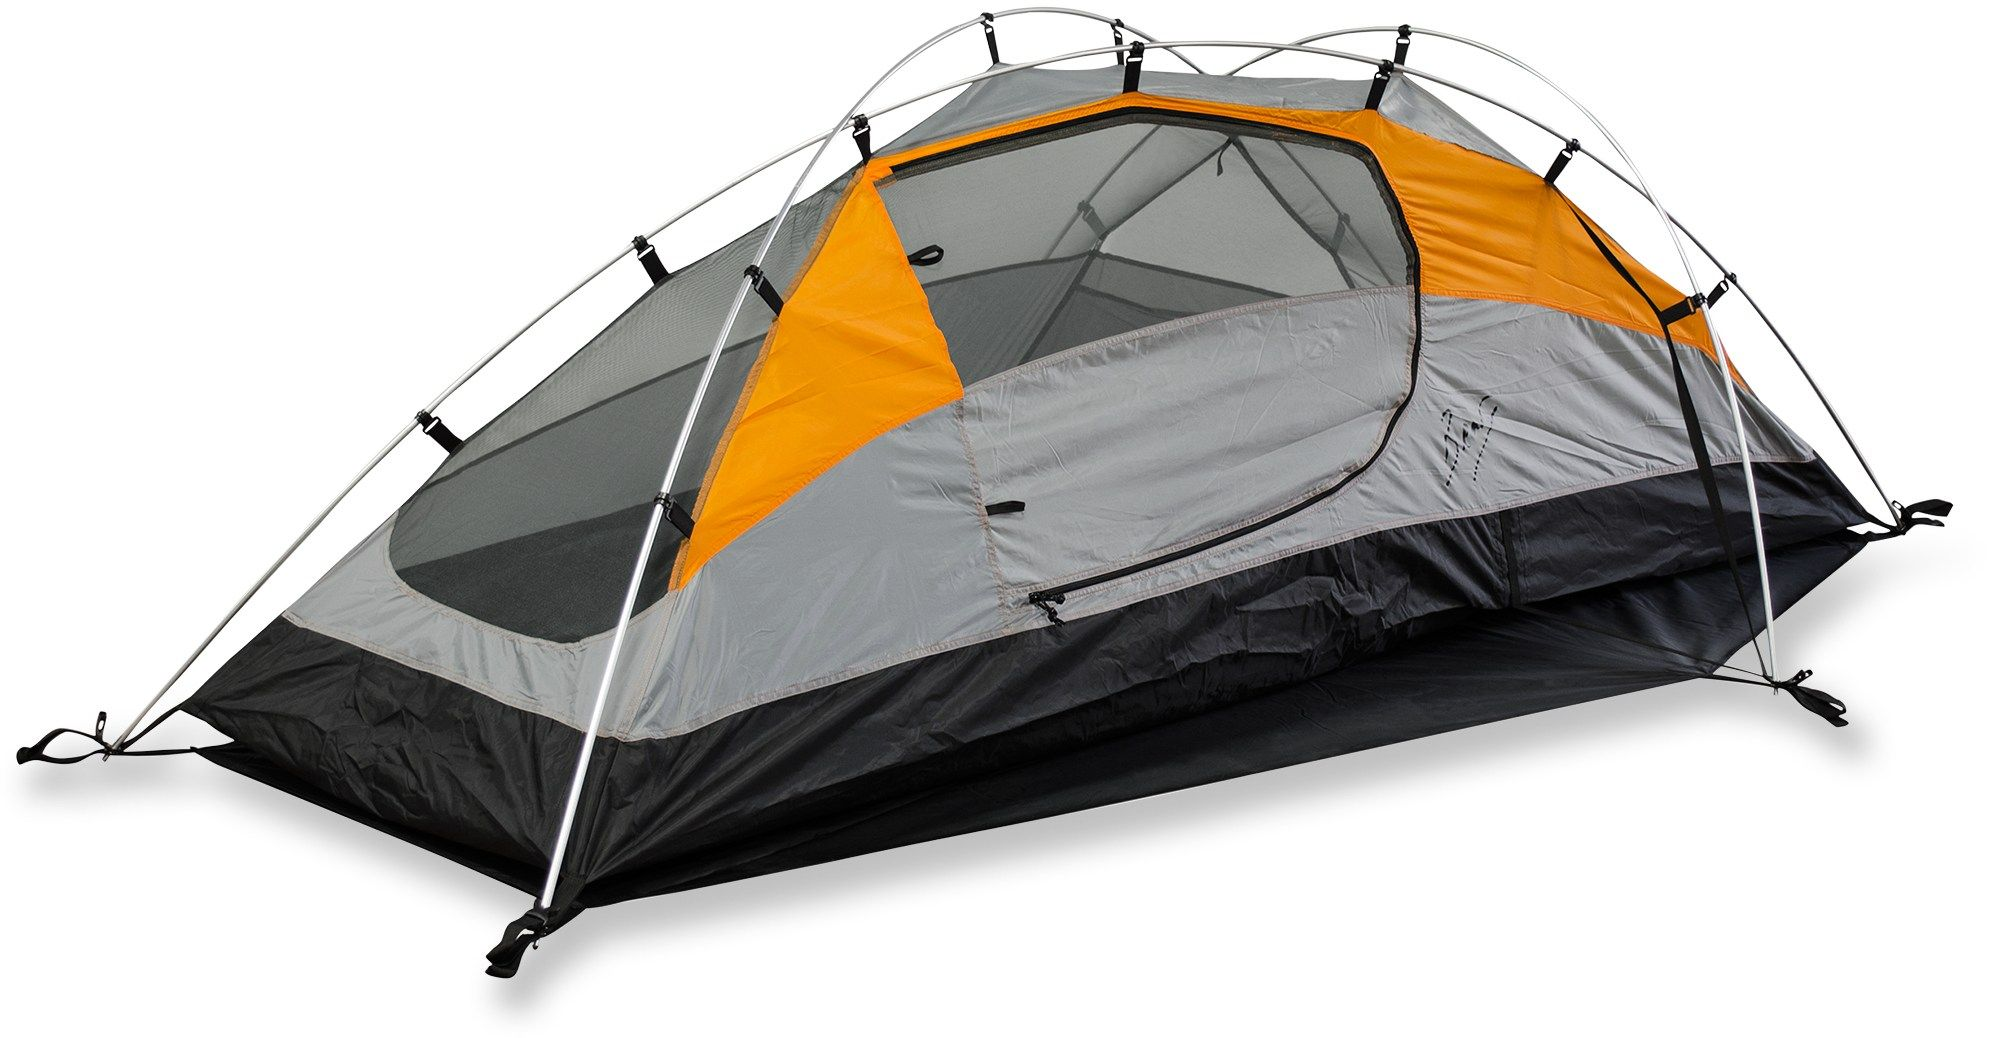 Bear Grylls 1-Man Backpacking Tent - 2013 Closeout - Free Shipping at REI -OUTLET.com  sc 1 st  Pinterest & Bear Grylls 1-Man Backpacking Tent - 2013 Closeout - Free Shipping ...